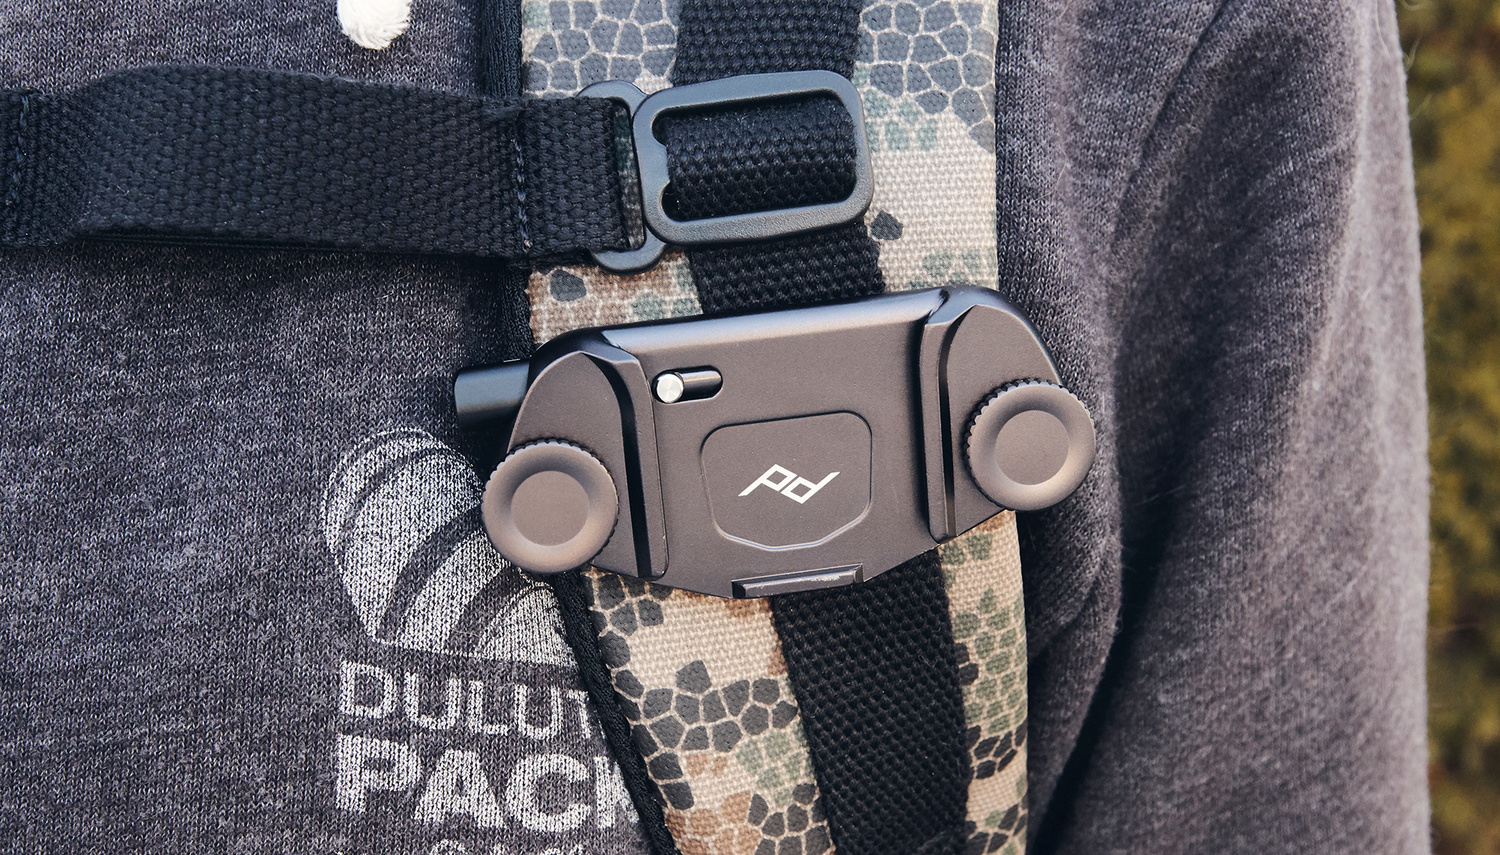 Fstoppers Reviews The Peak Design Capture Camera Clip V3 A New Slim Black Of Course Is Not Limited To Backpack Straps Any Sort Strap Thats No More Than Around 25 Inches Wide And 087 Thick That